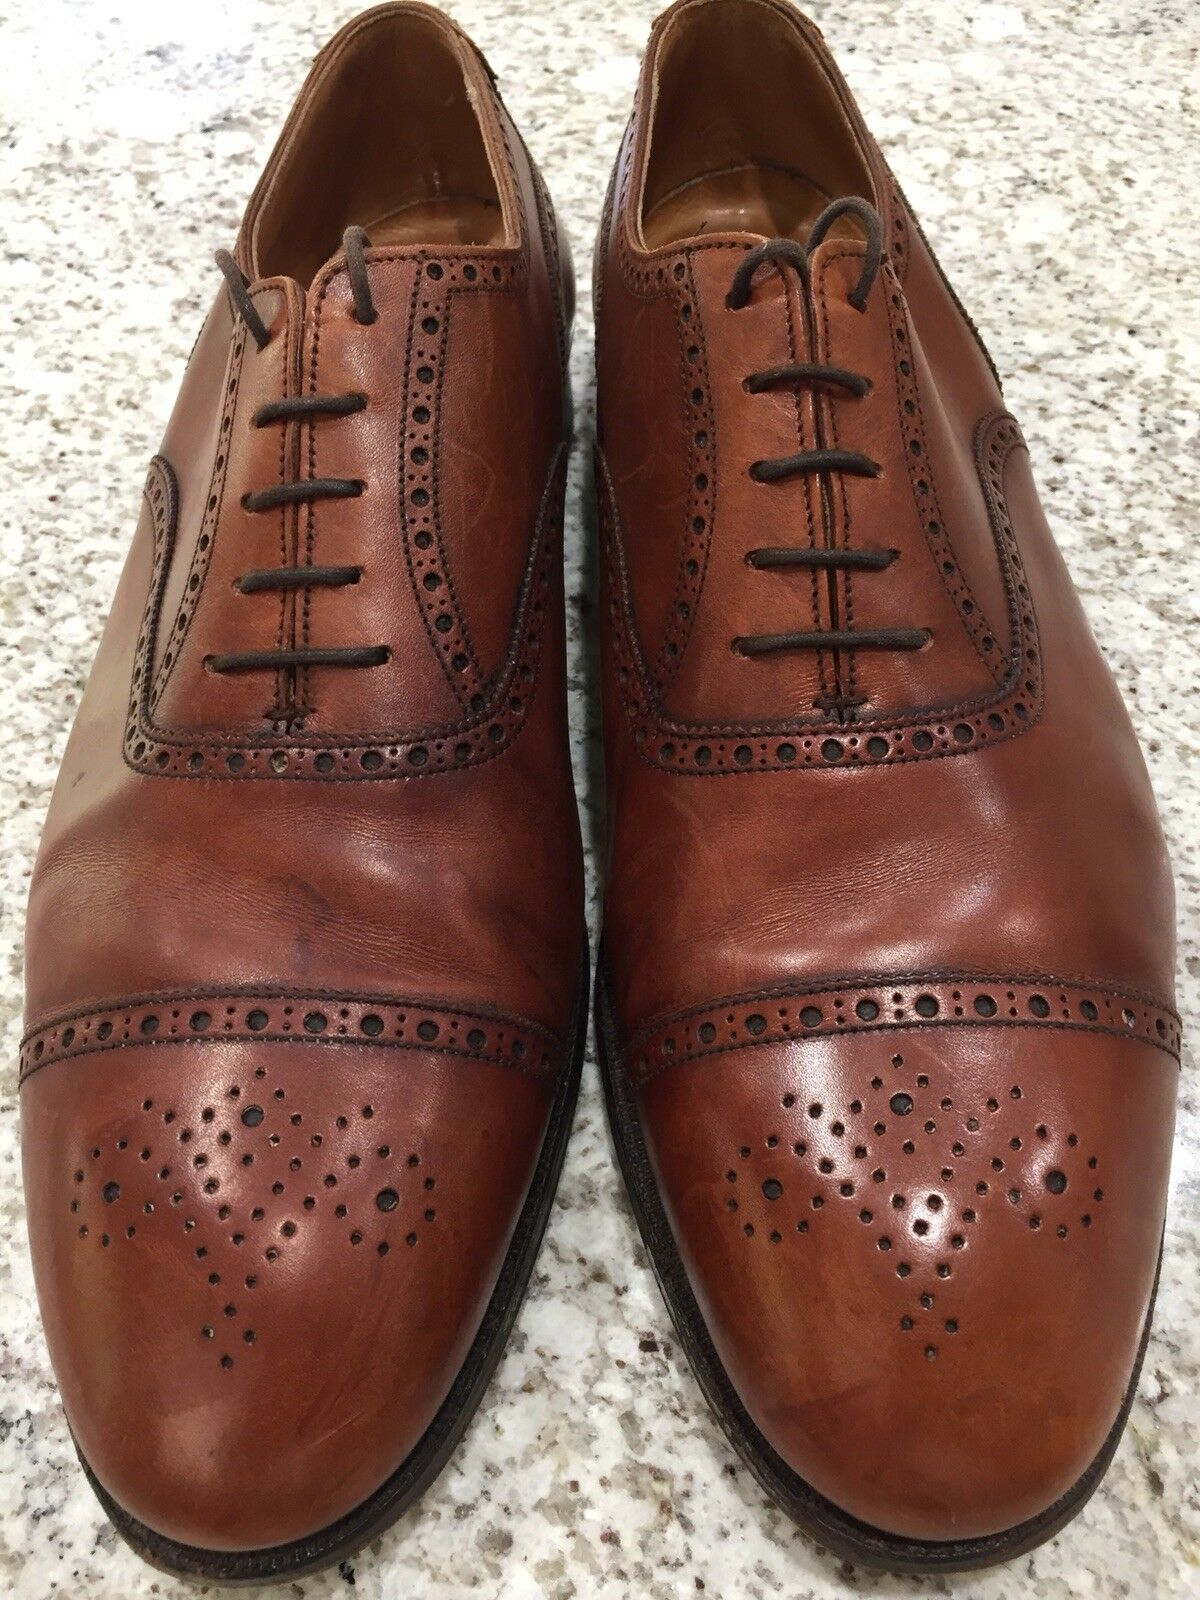 Crockett Jones Berkeley Brogue Puntera Marrón Oxford 13 D 14 D Reino Unido nos Excelente